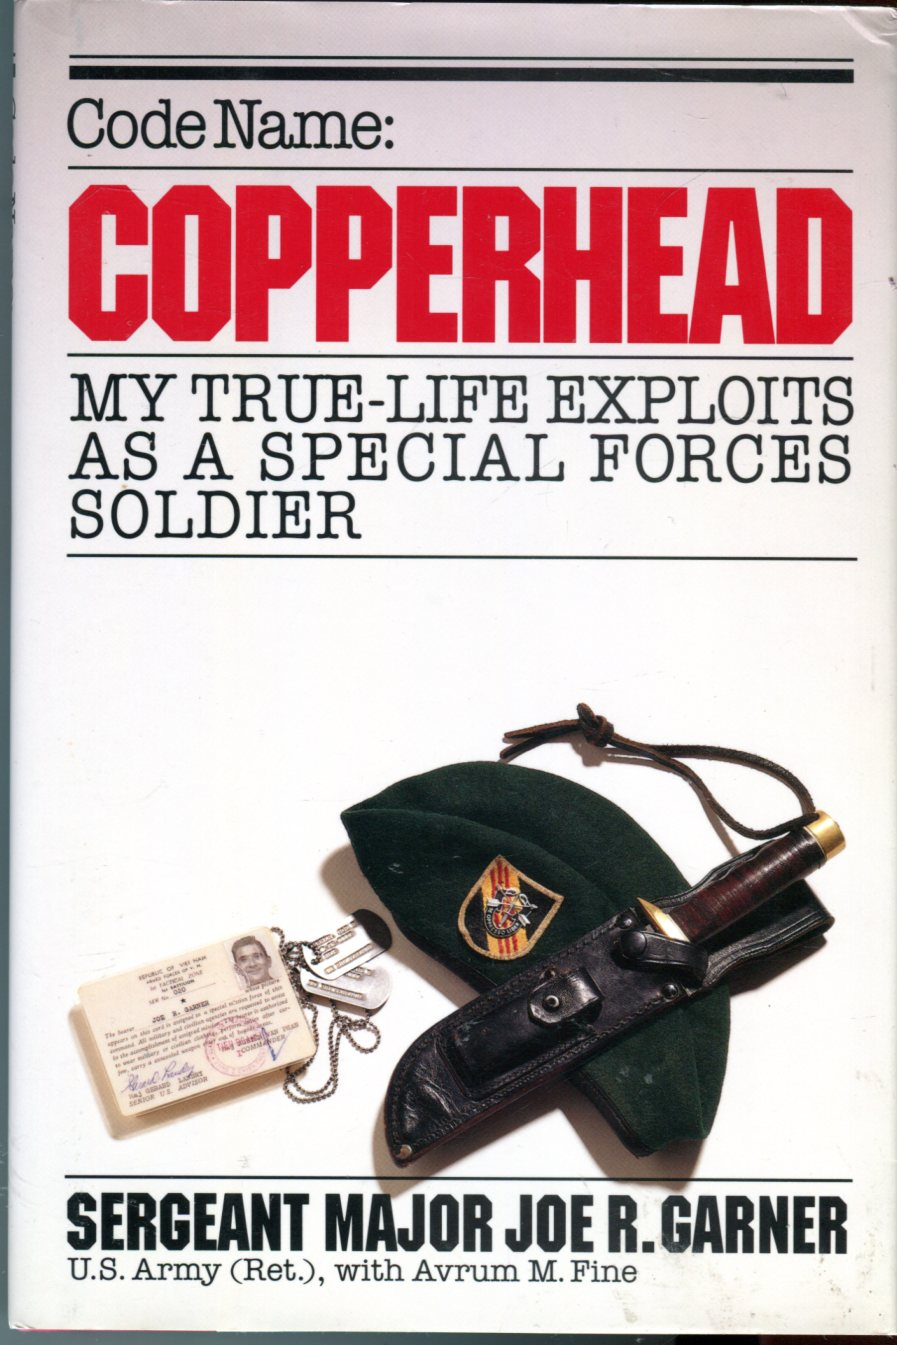 Image for Code Name: Copperhead, My True- Life Exploits as a Special Forces Soldier